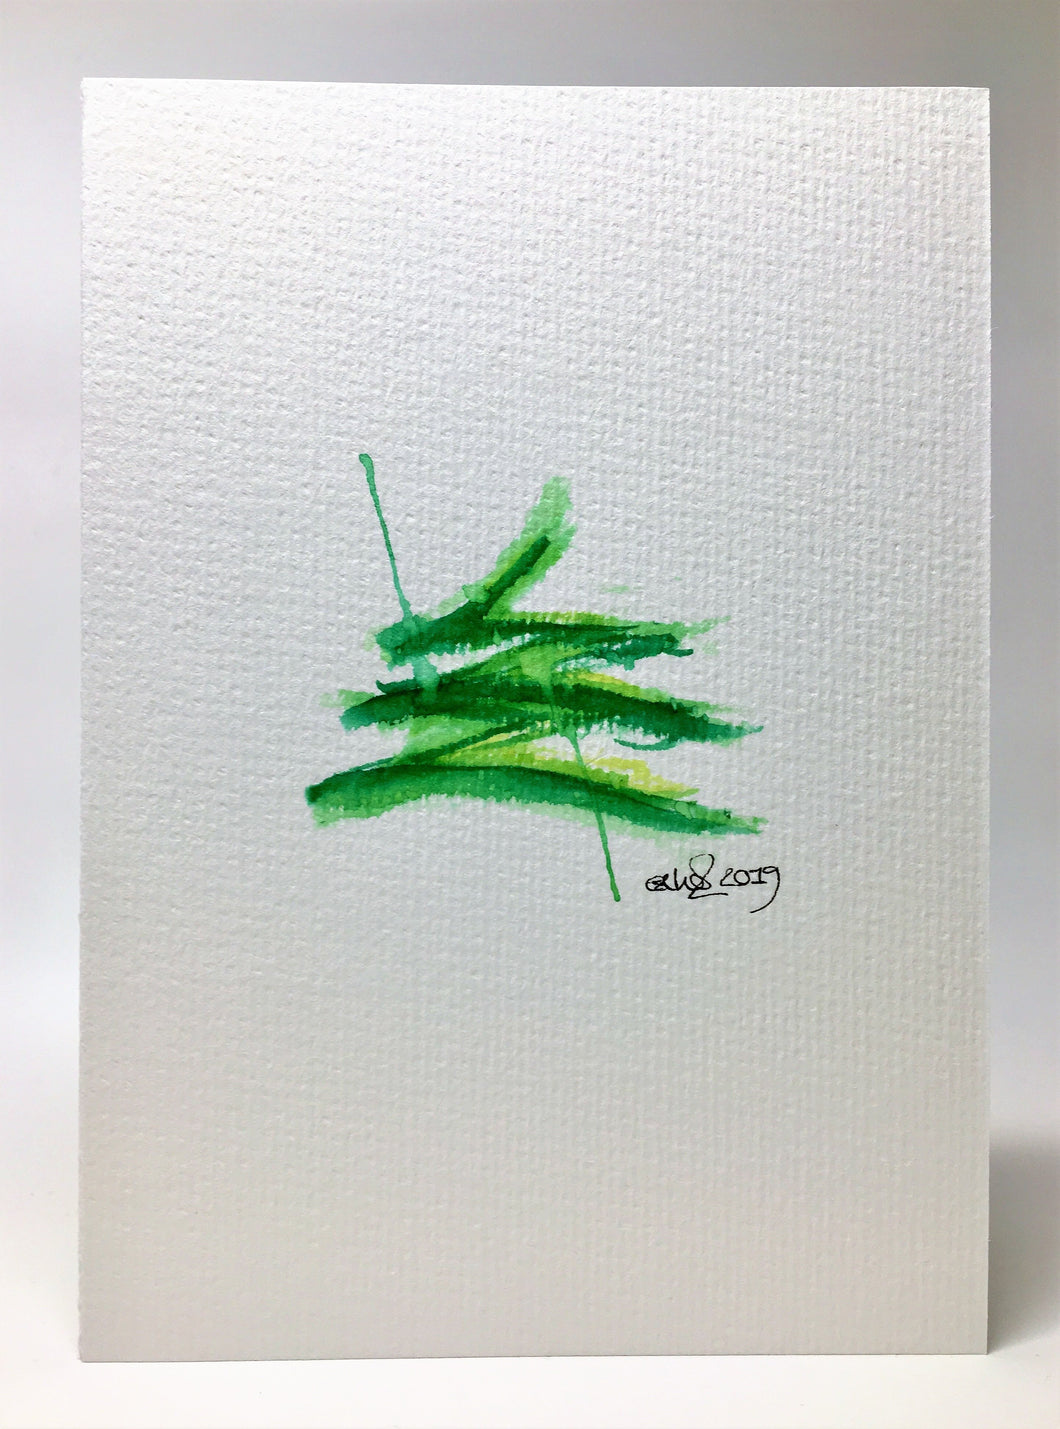 Original Hand Painted Christmas Card - Tree Collection - Green Splatter #4 - eDgE dEsiGn London